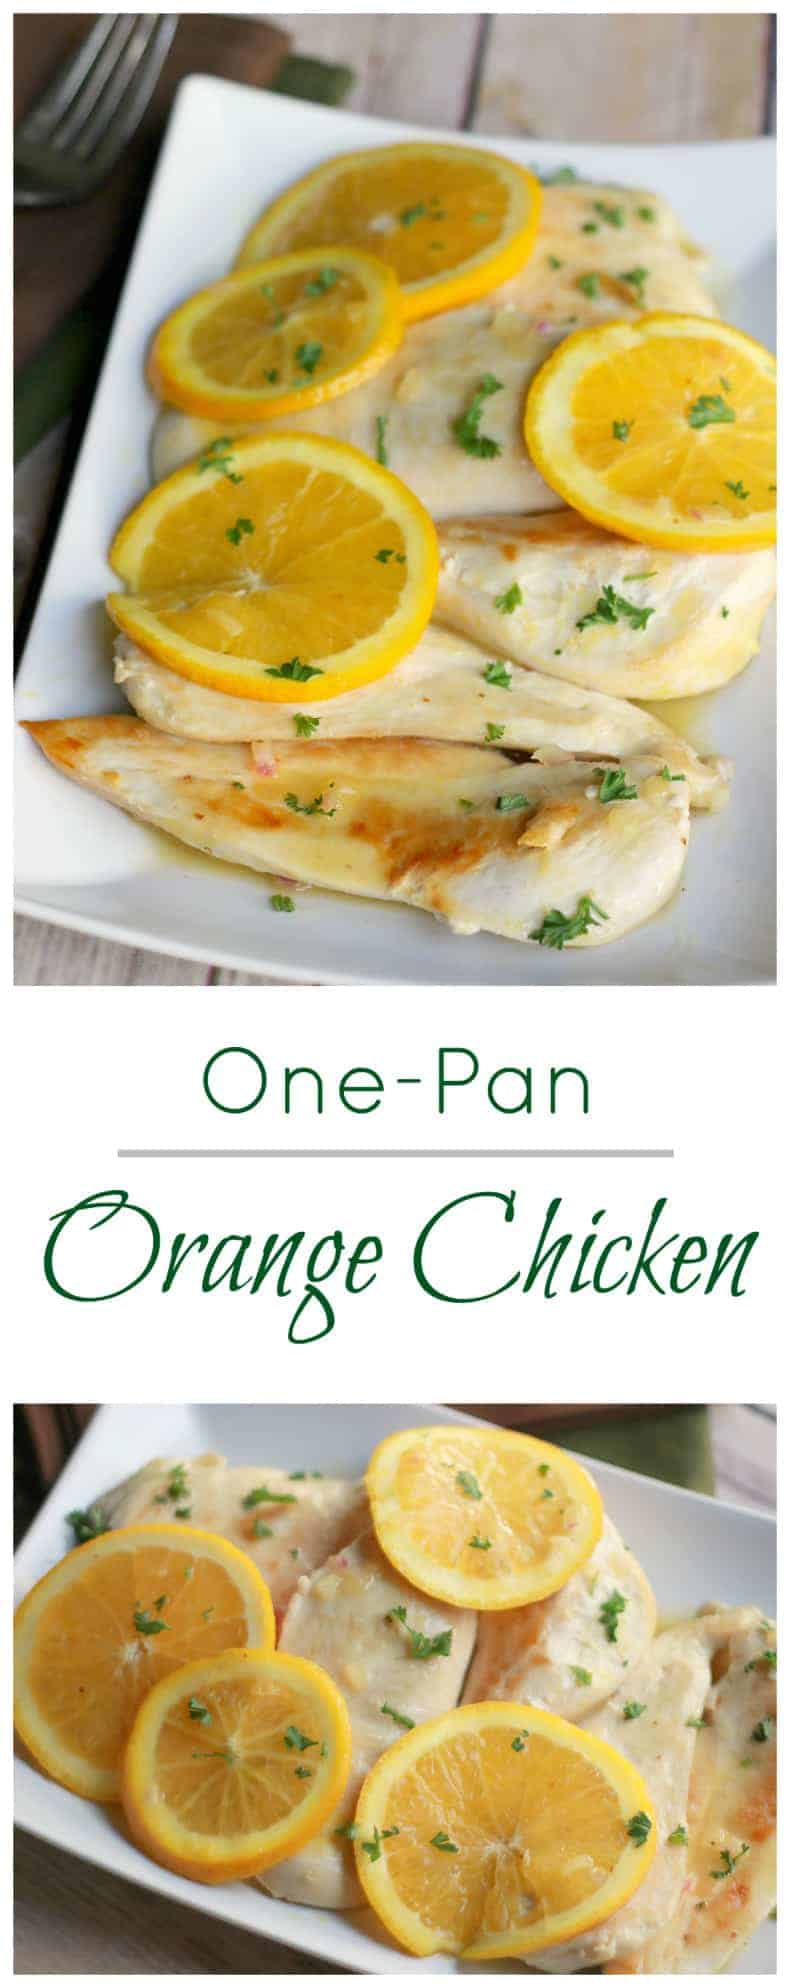 One Pan Orange Chicken 30 Minute Meal